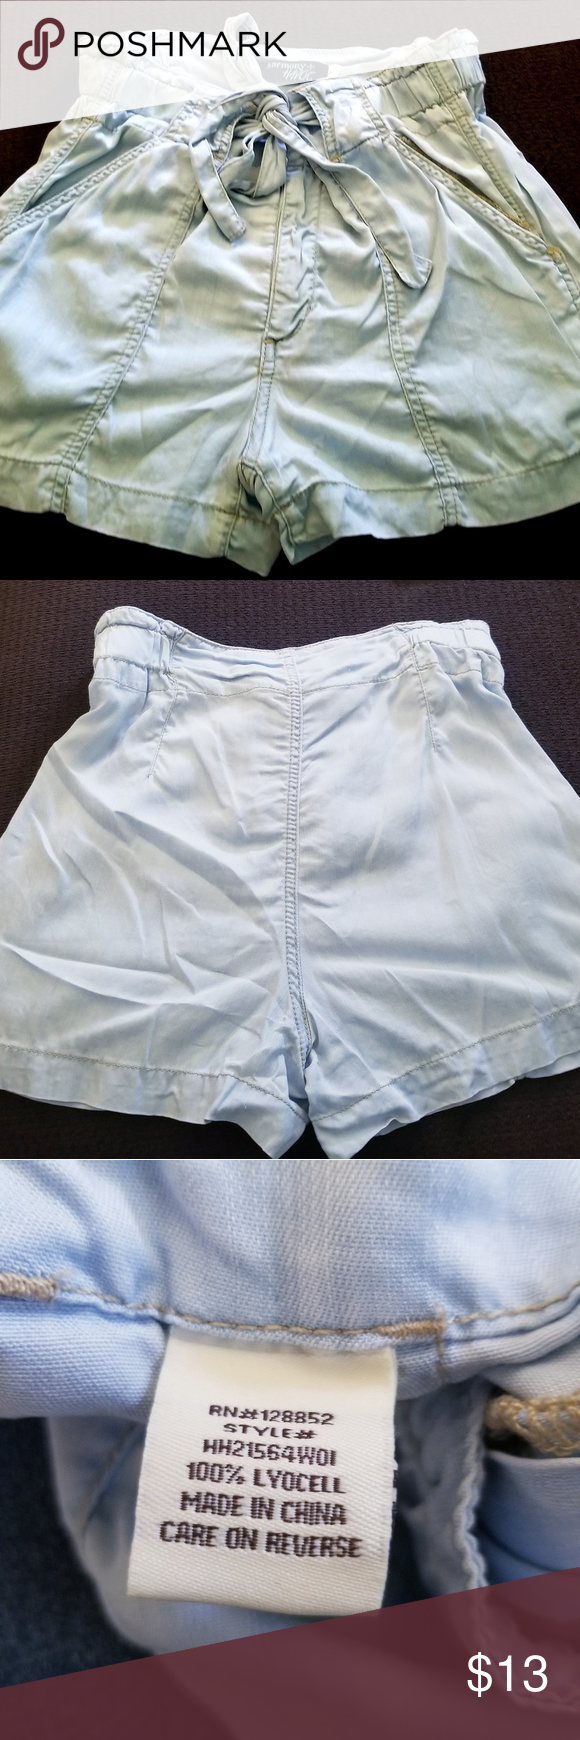 Light blue shorts Super cute dressy shorts. Very light blue denim color. Elastic & draw belt waist. Material is light and perfect for summer.  Adjustable, can fit up to 27 inch waist. Shorts #lightblueshorts